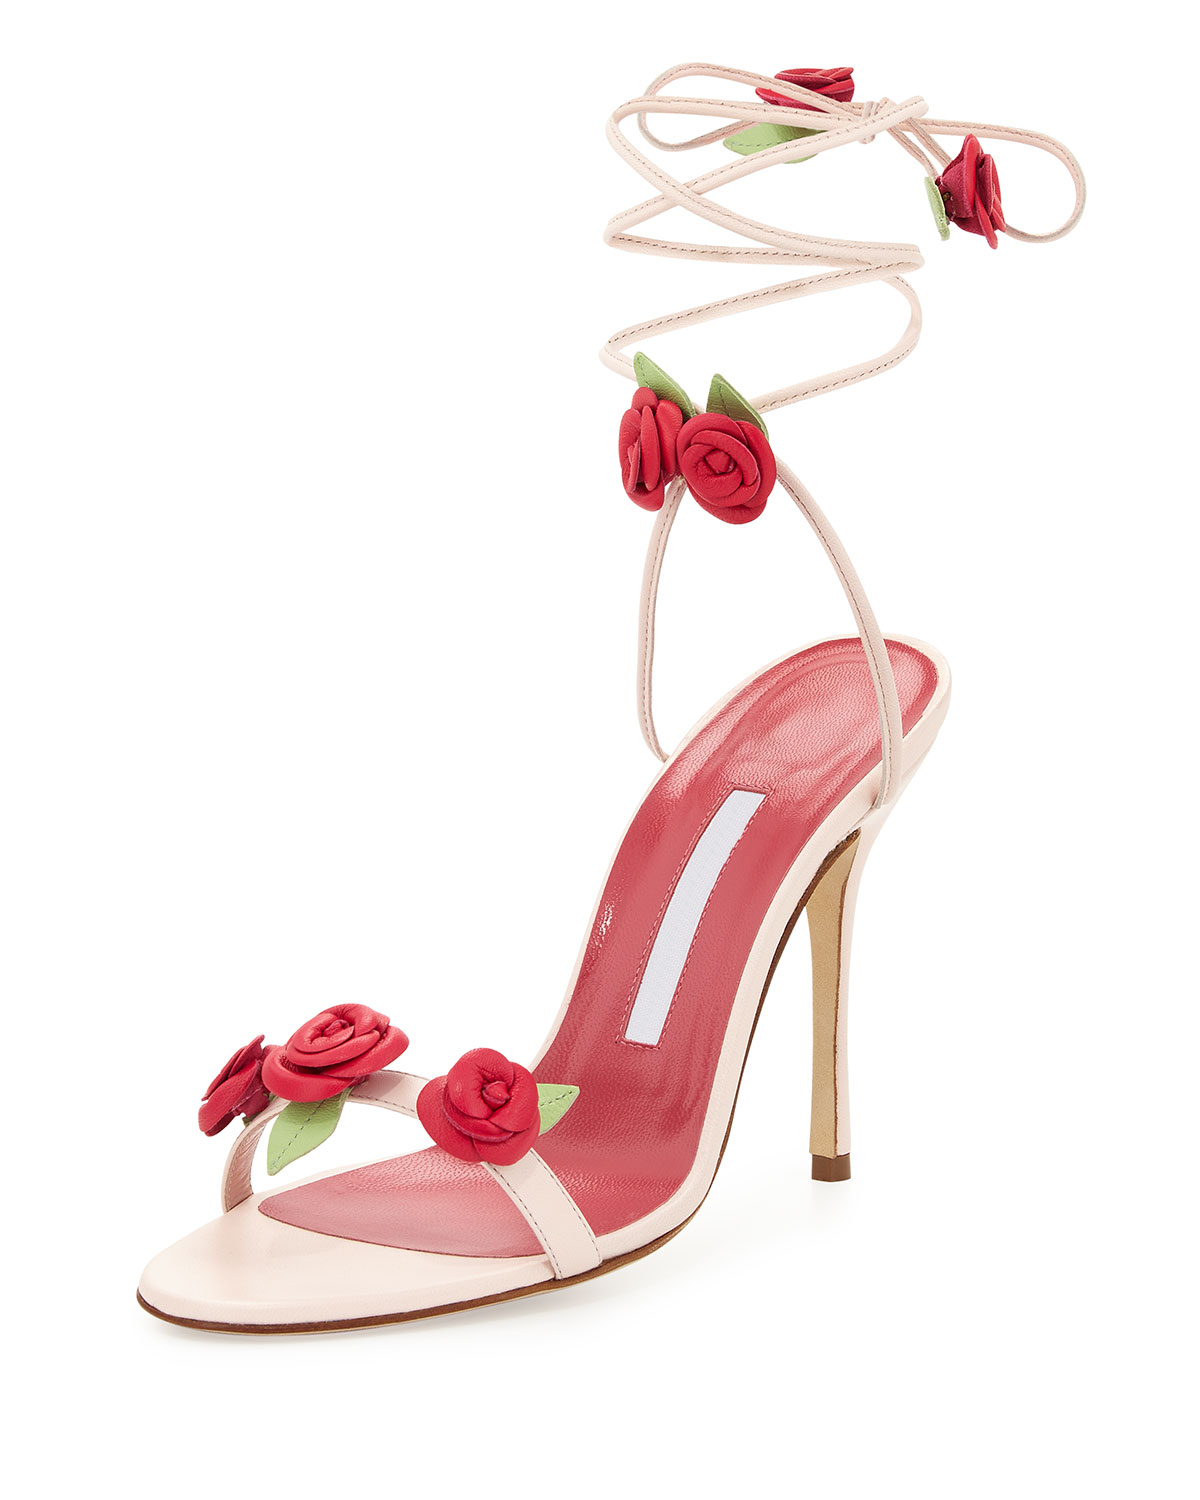 Manolo Blahnik Xiafore Rose Ankle Wrap Sandals Pink Red